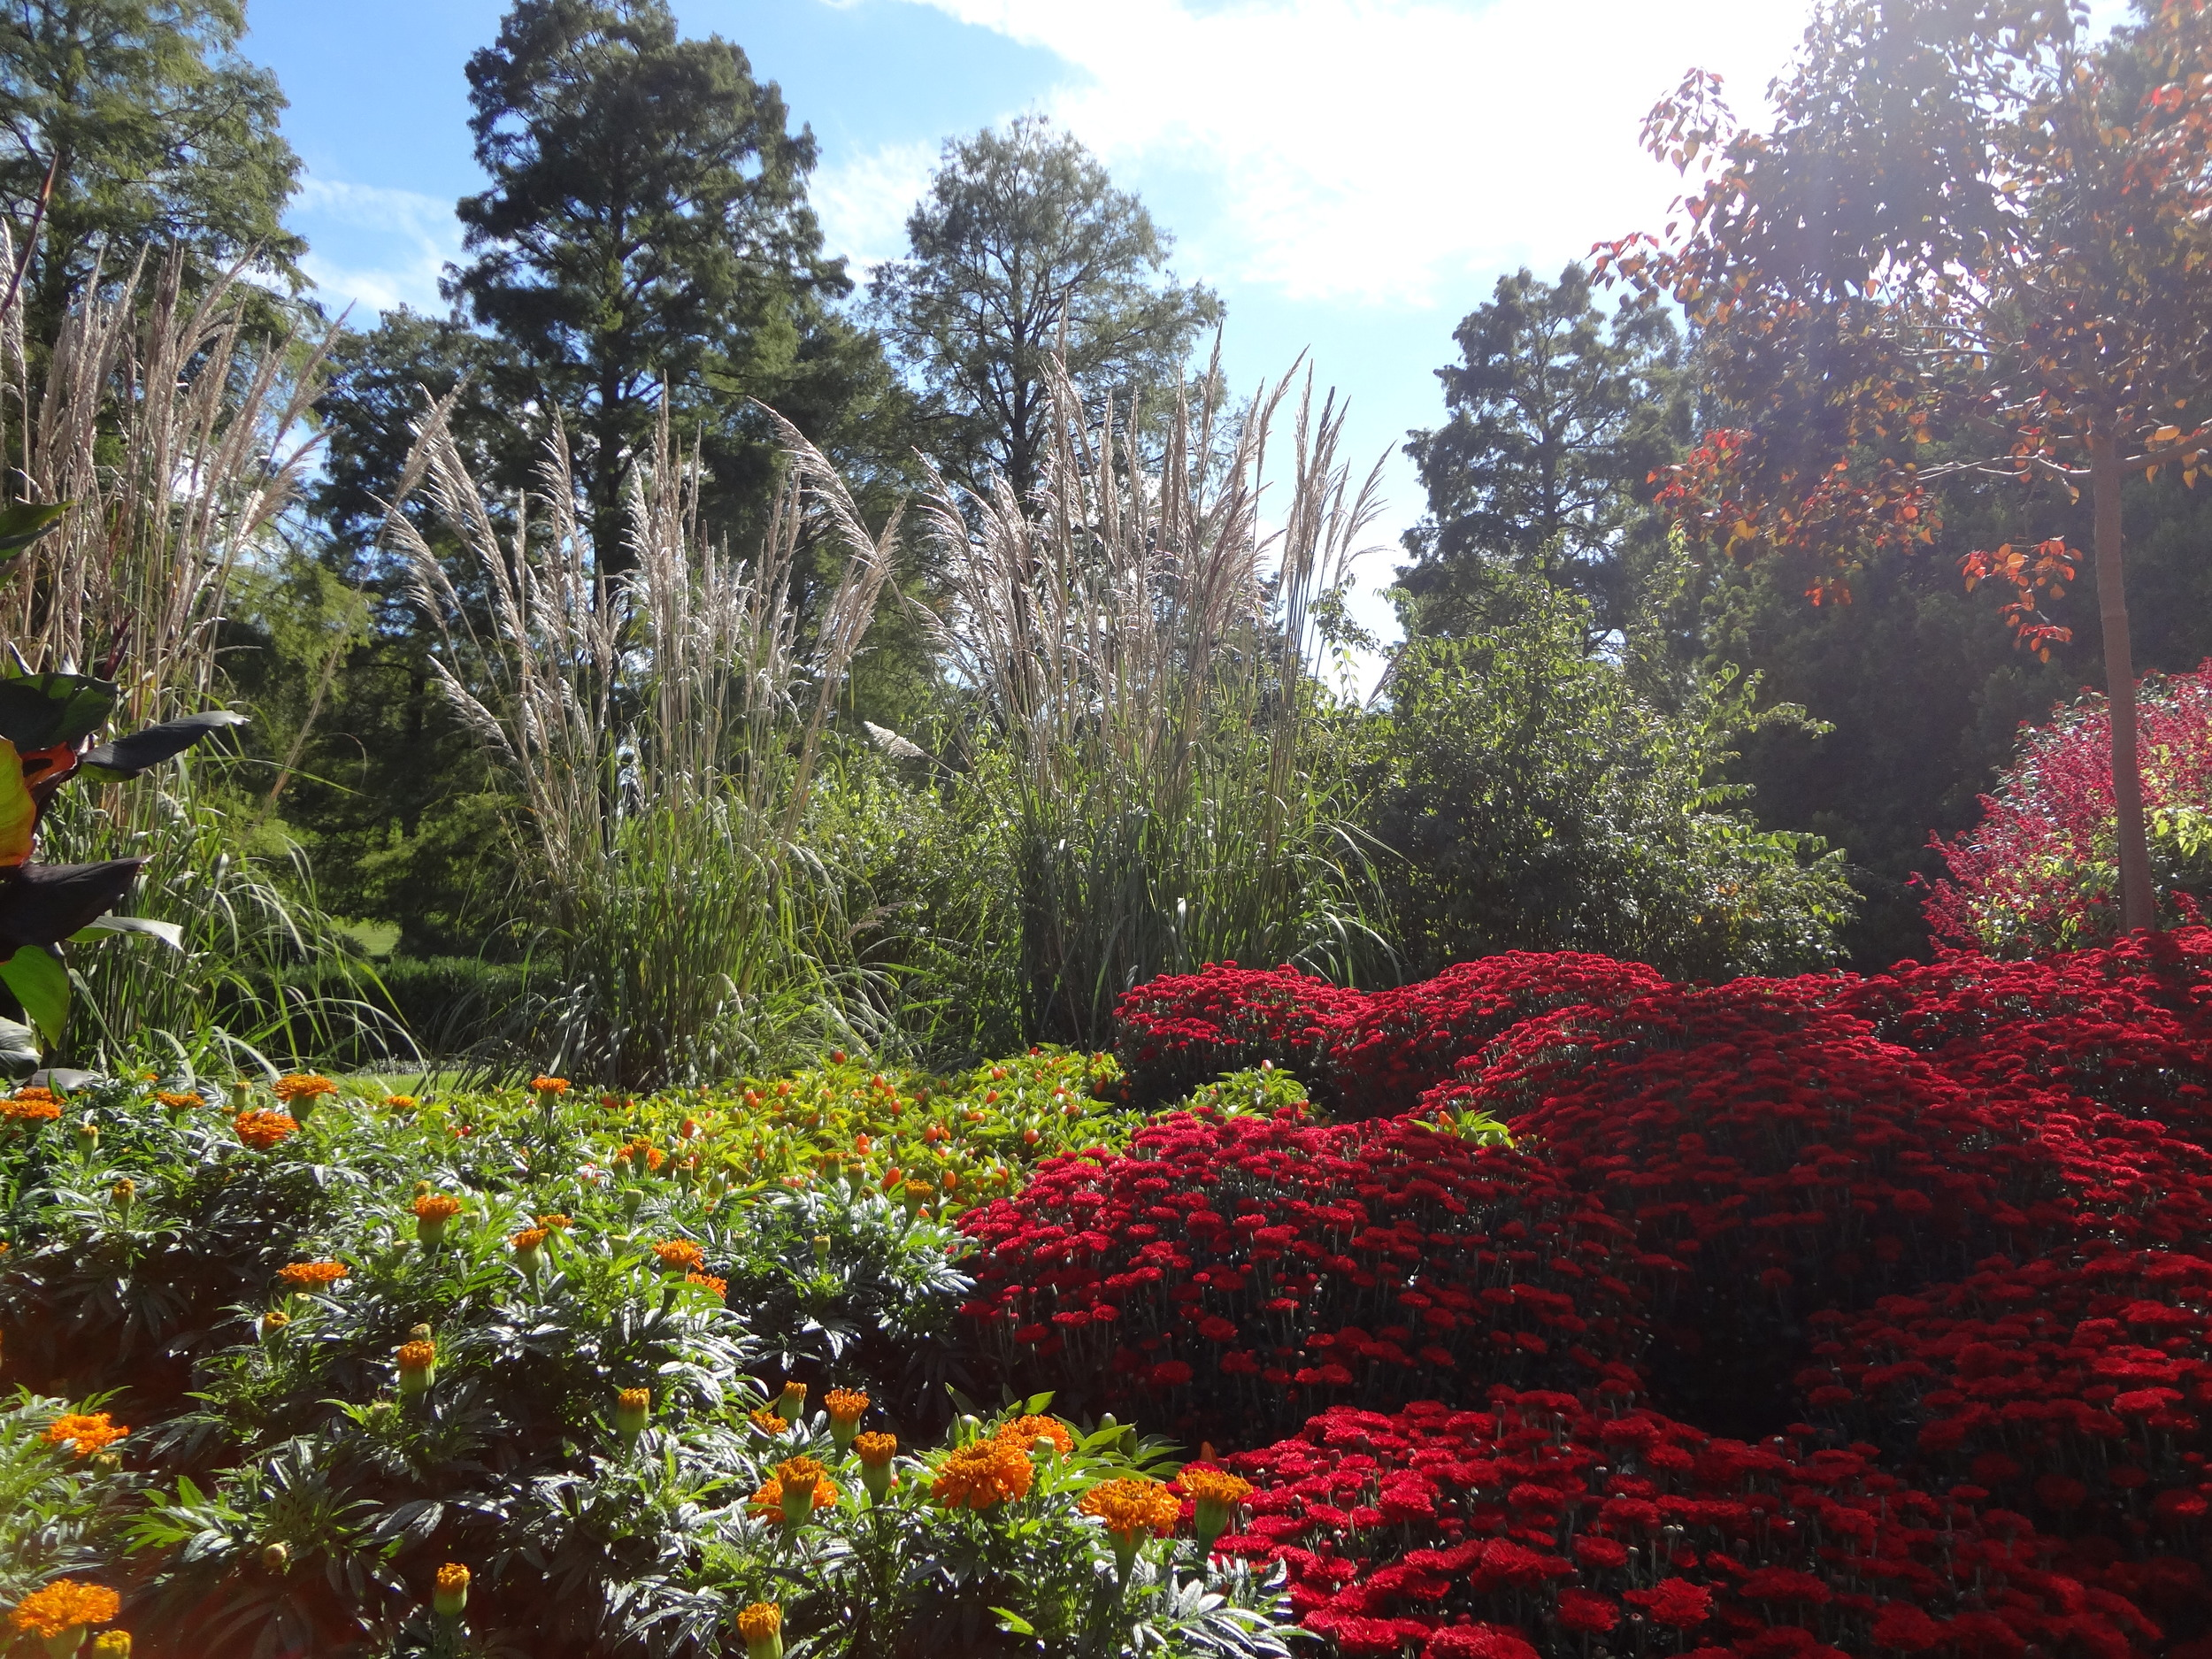 The use of the redchrysanthemums really draws the eye into this mixed bed planting at Longwood Gardens.